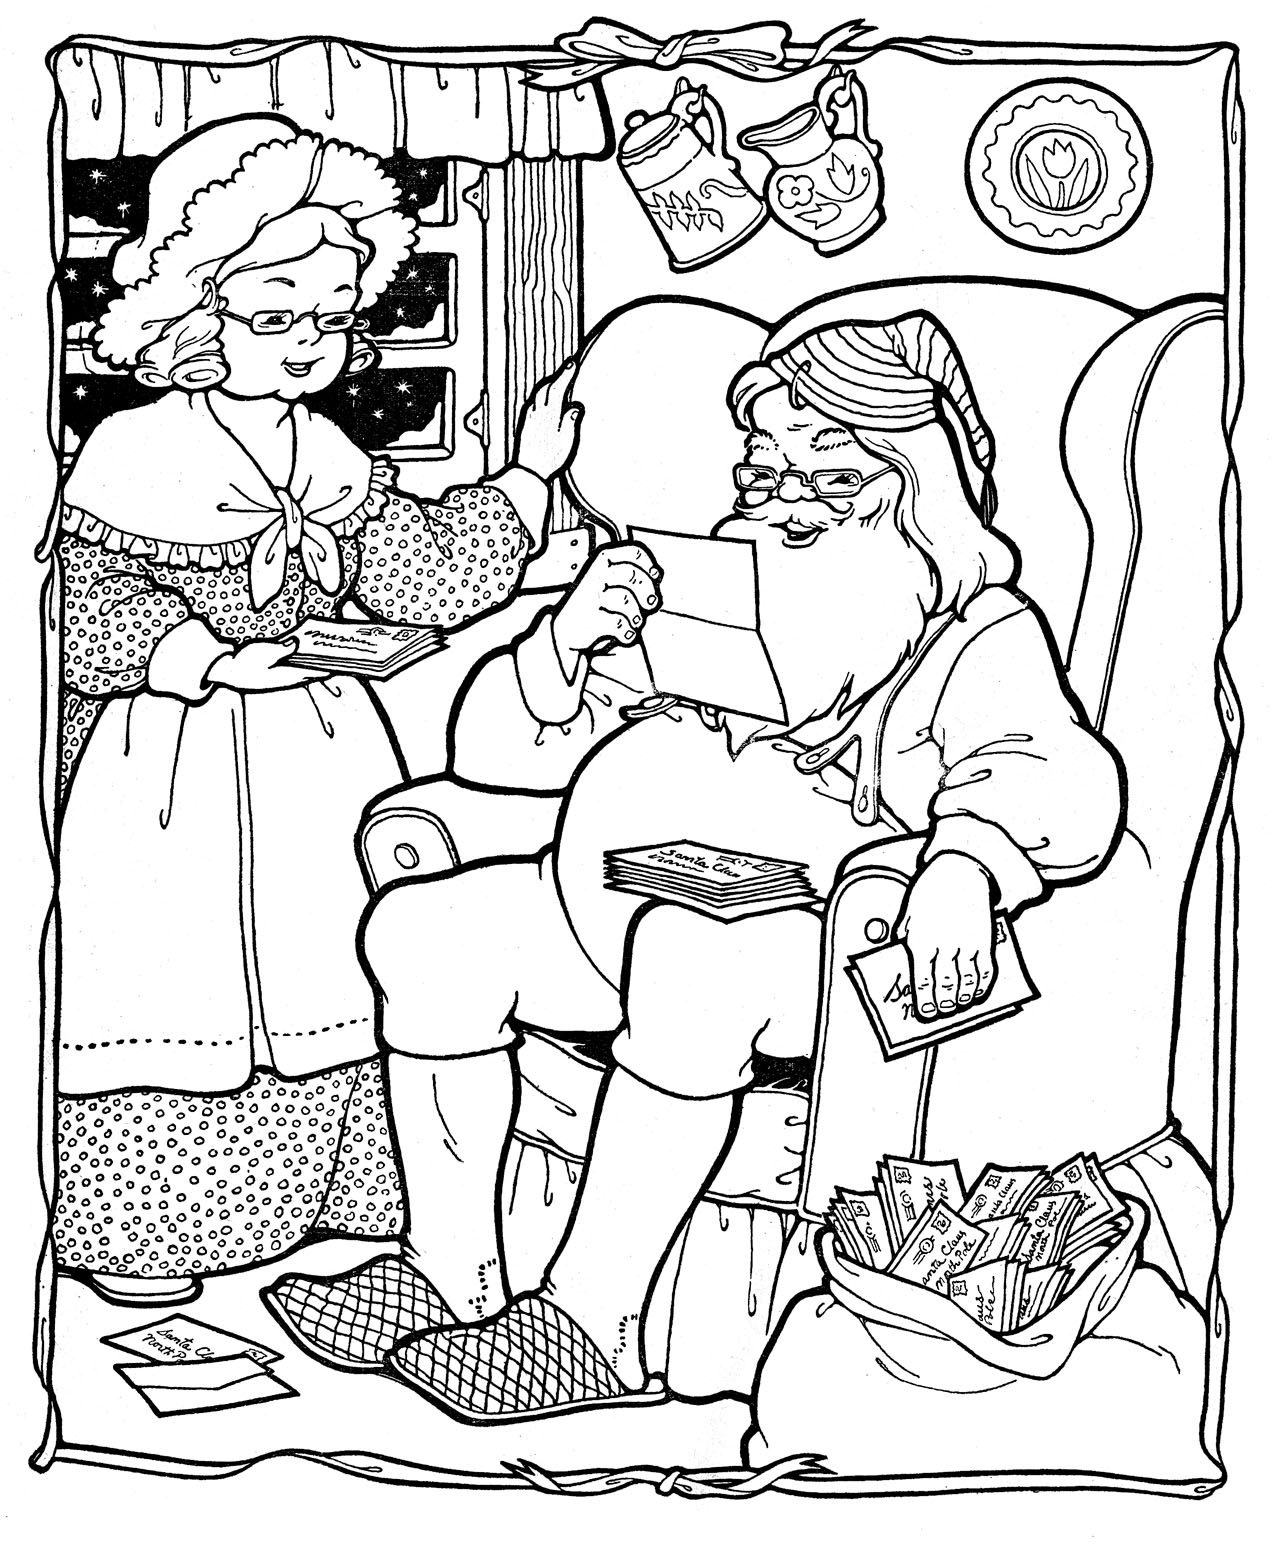 Co color painting games - Co Co Coloring Games For Christmas Kids Printable Santa Coloring Page Christmas The Graphics Fairy